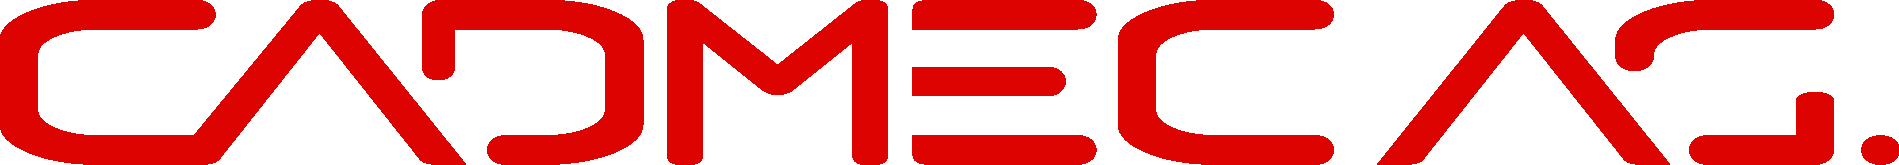 cad logo red rgb